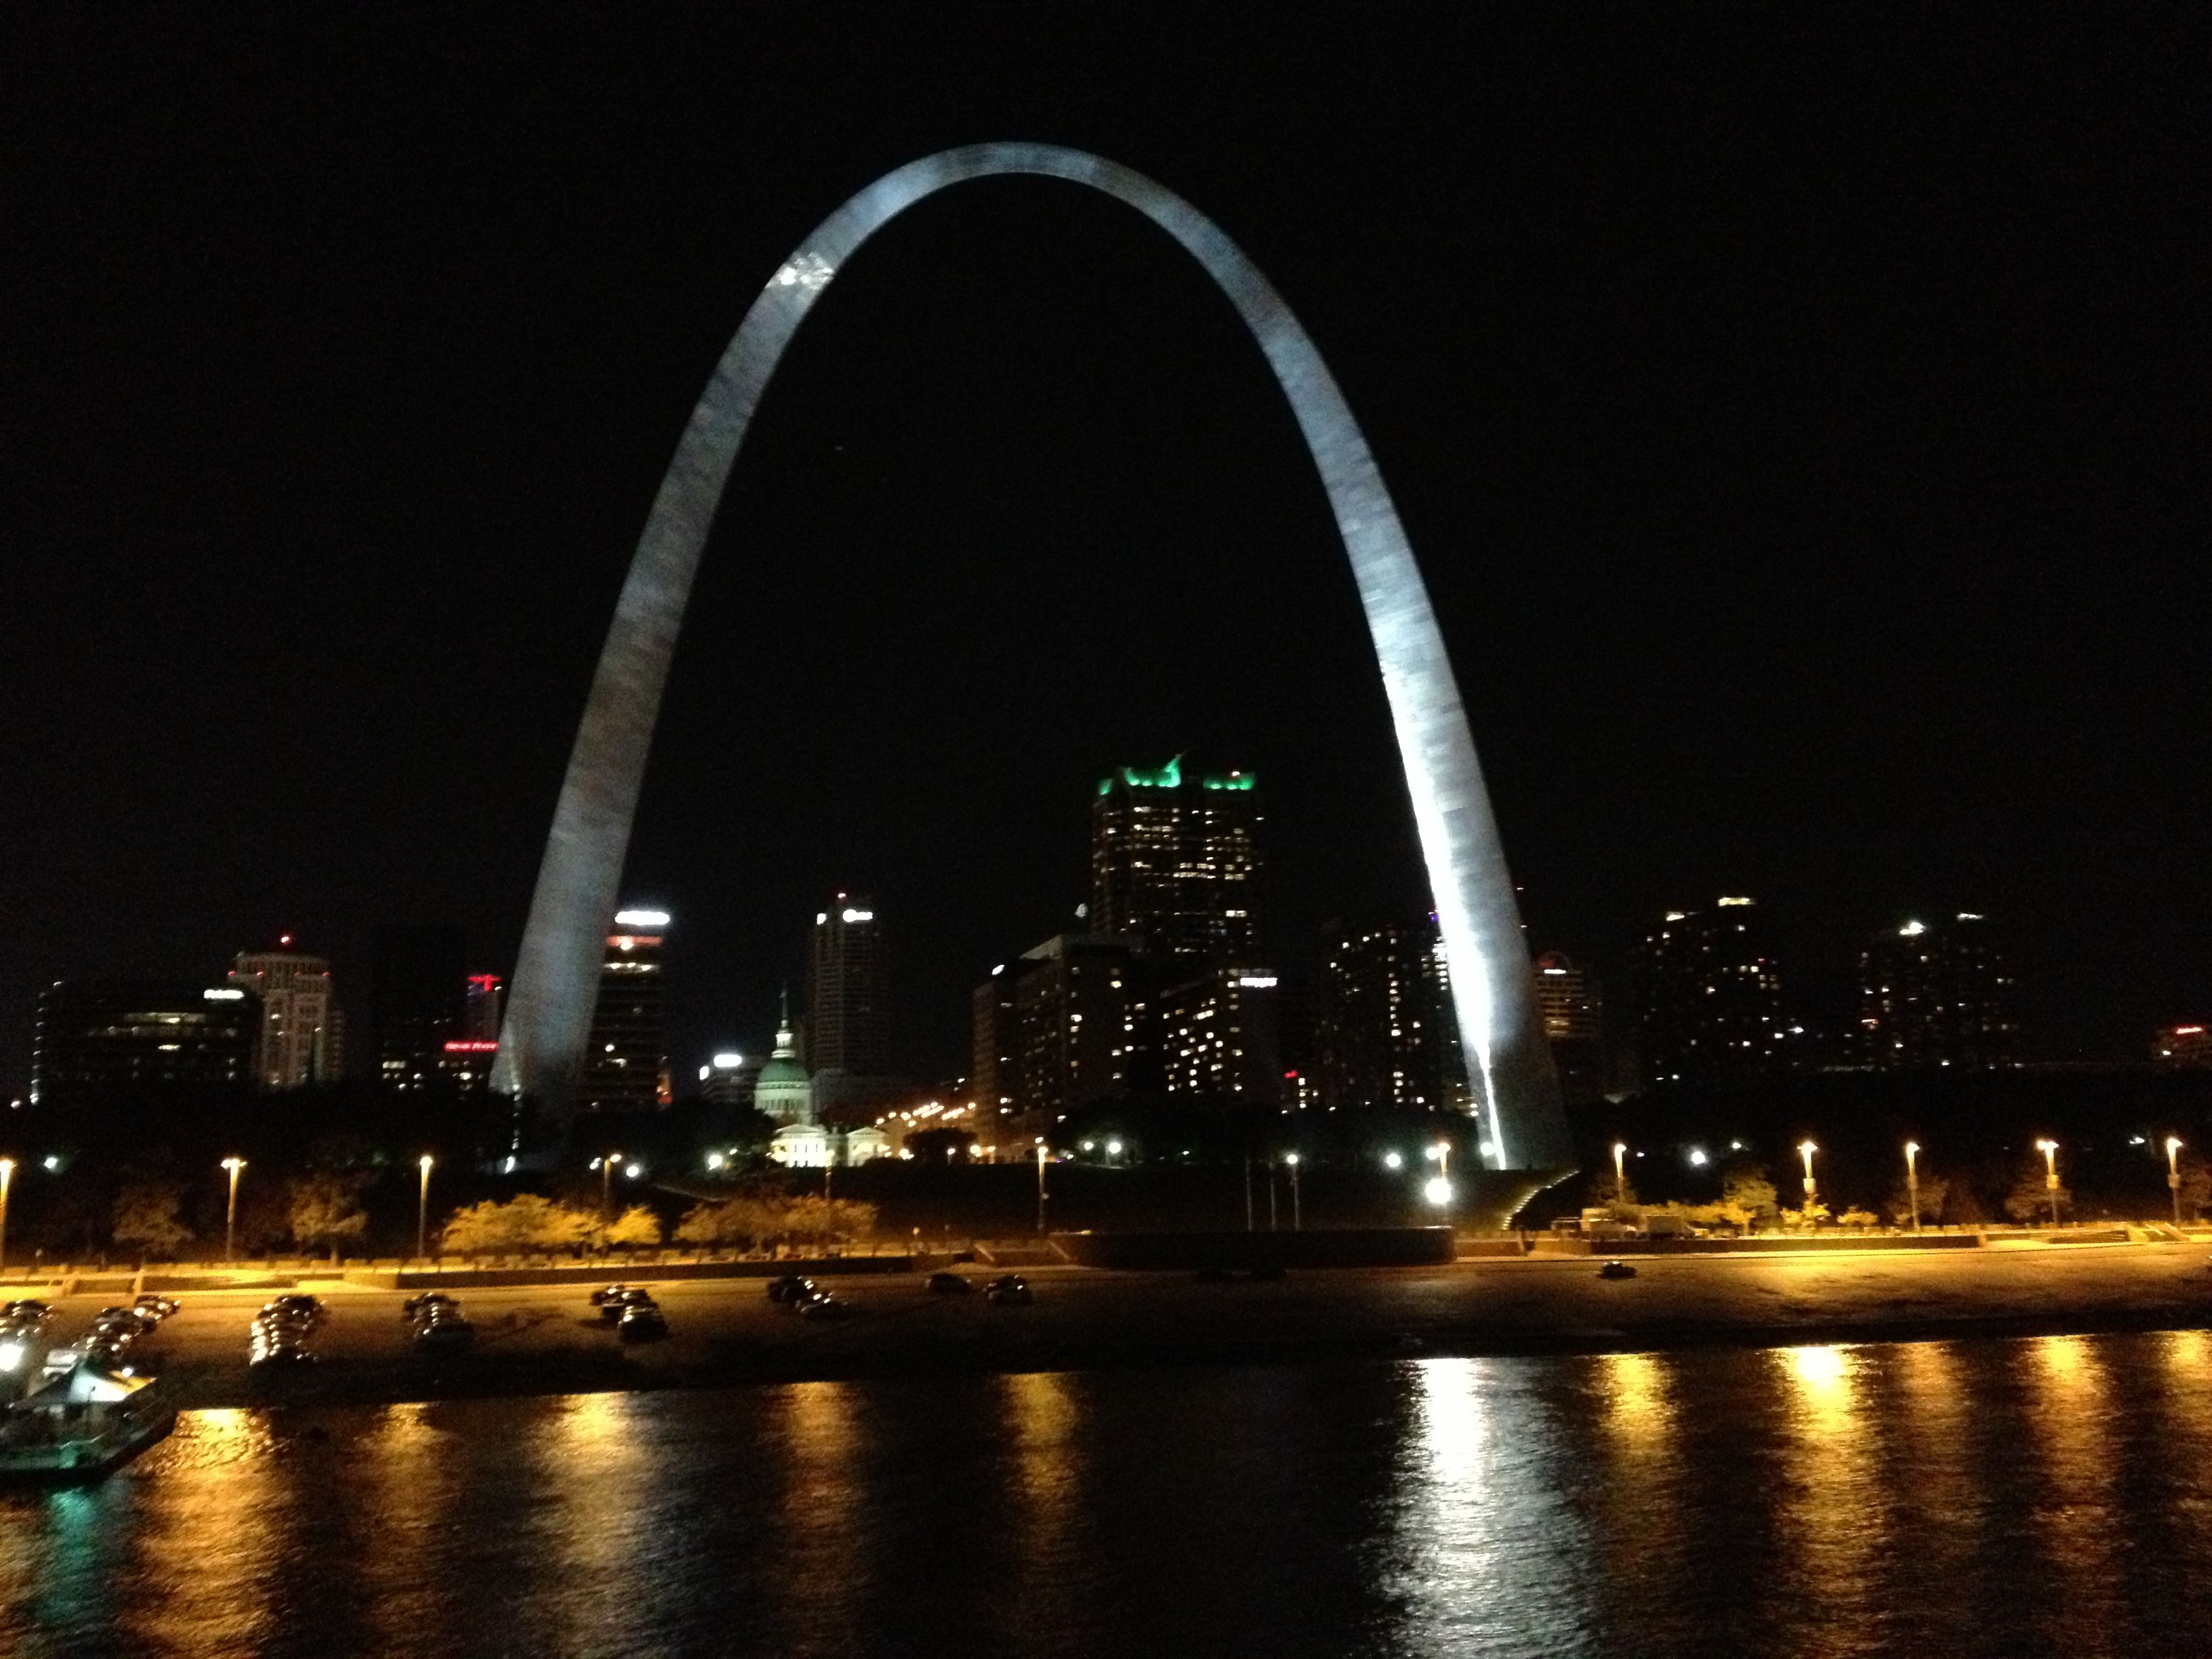 The view of the St Louis arch from onboard the American Queen